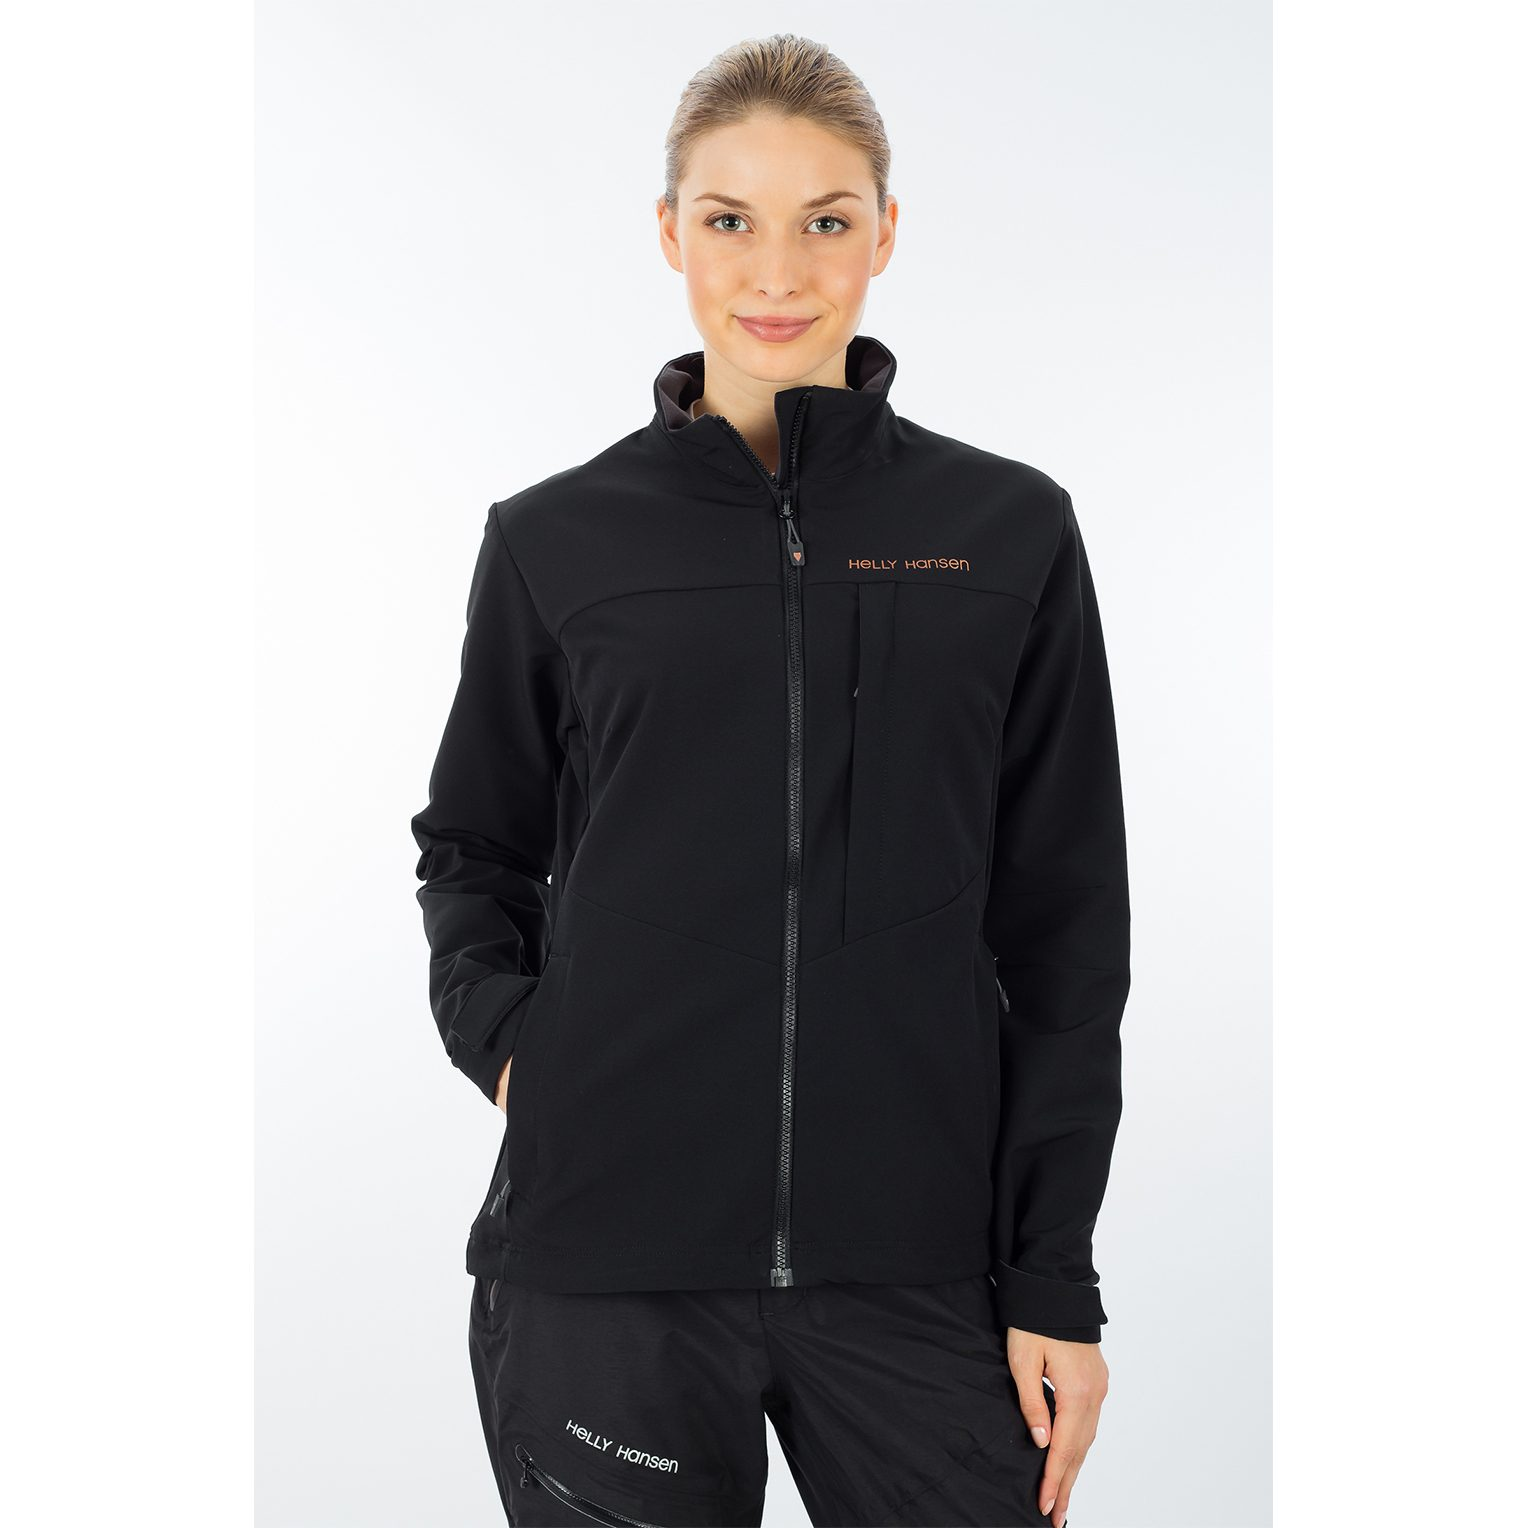 Helly Hansen Women's Odin Rapide Softshell Jacket Review